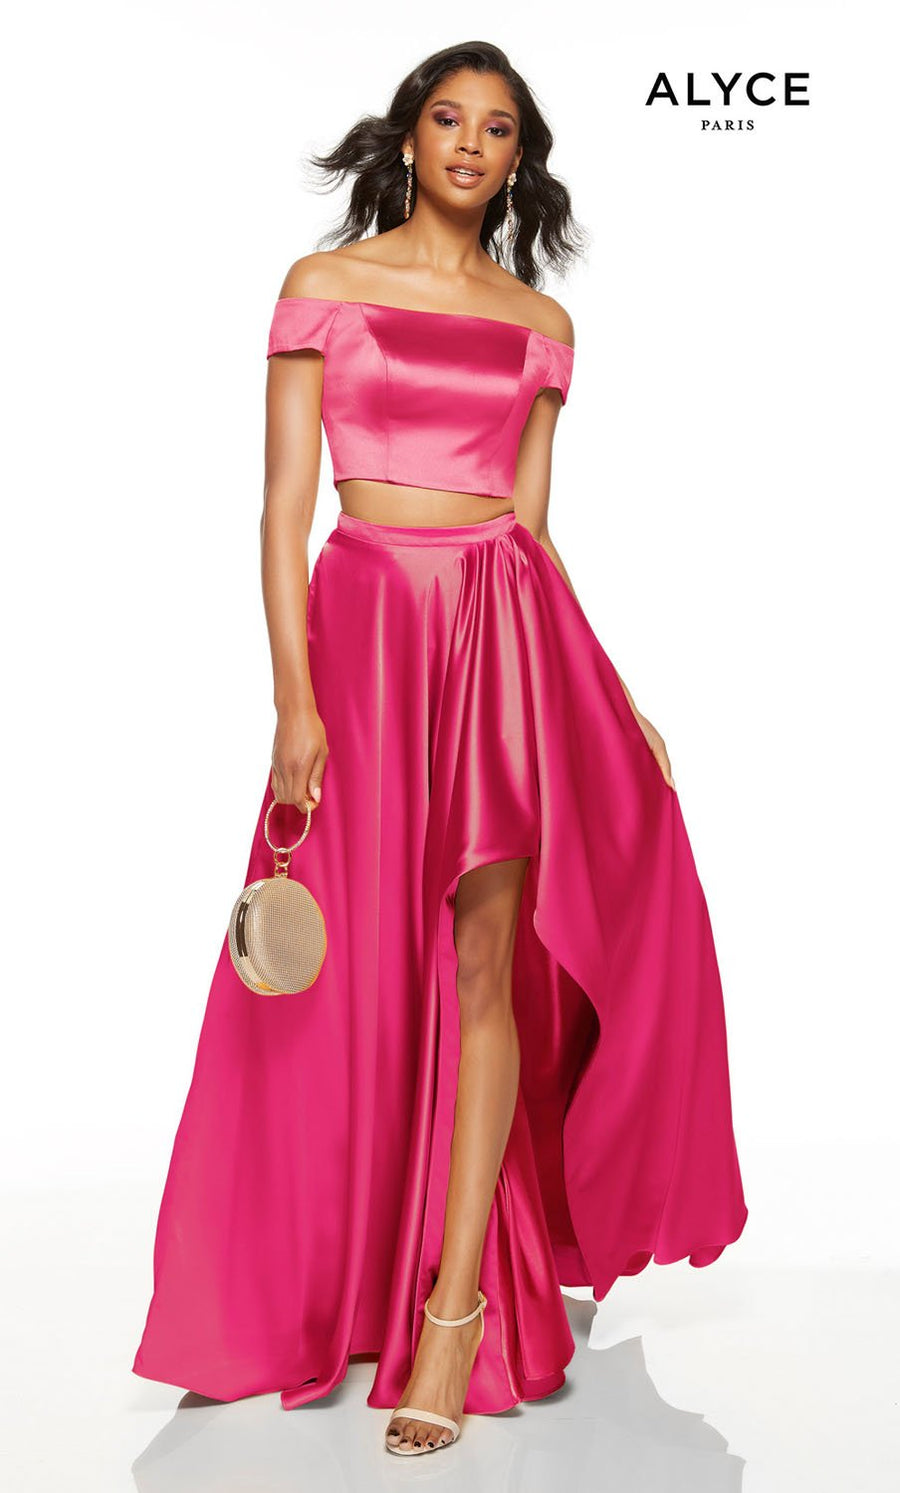 Alyce Paris 1529 prom dress images.  Alyce Paris 1529 is available in these colors: Marigold, Midnight, Hot Fuchsia.